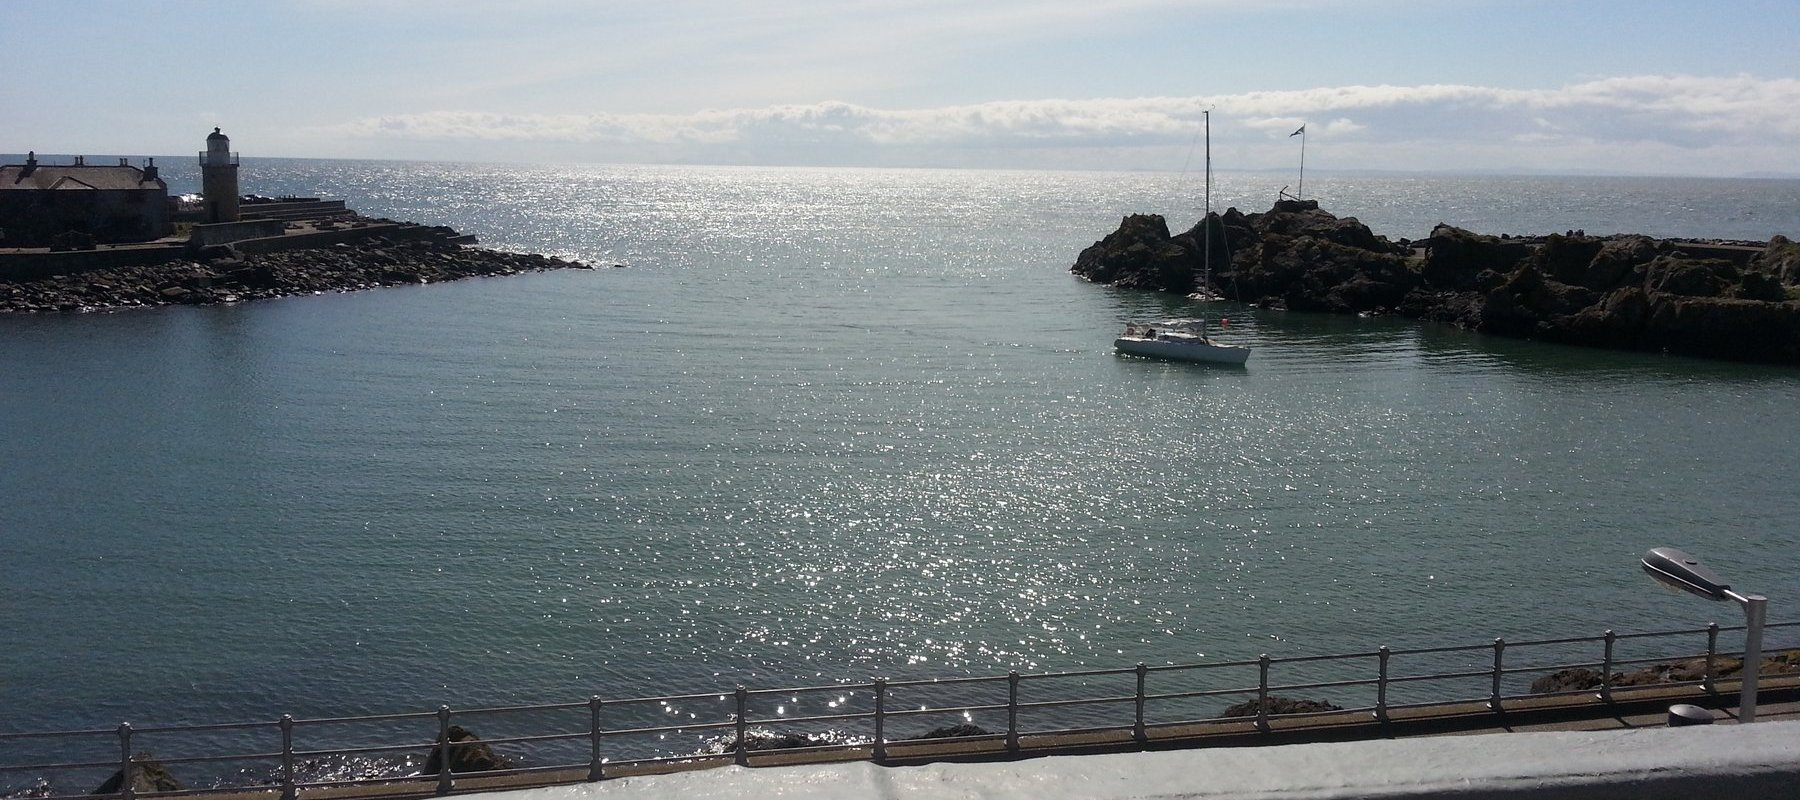 View from my room in the Harbour House Hotel